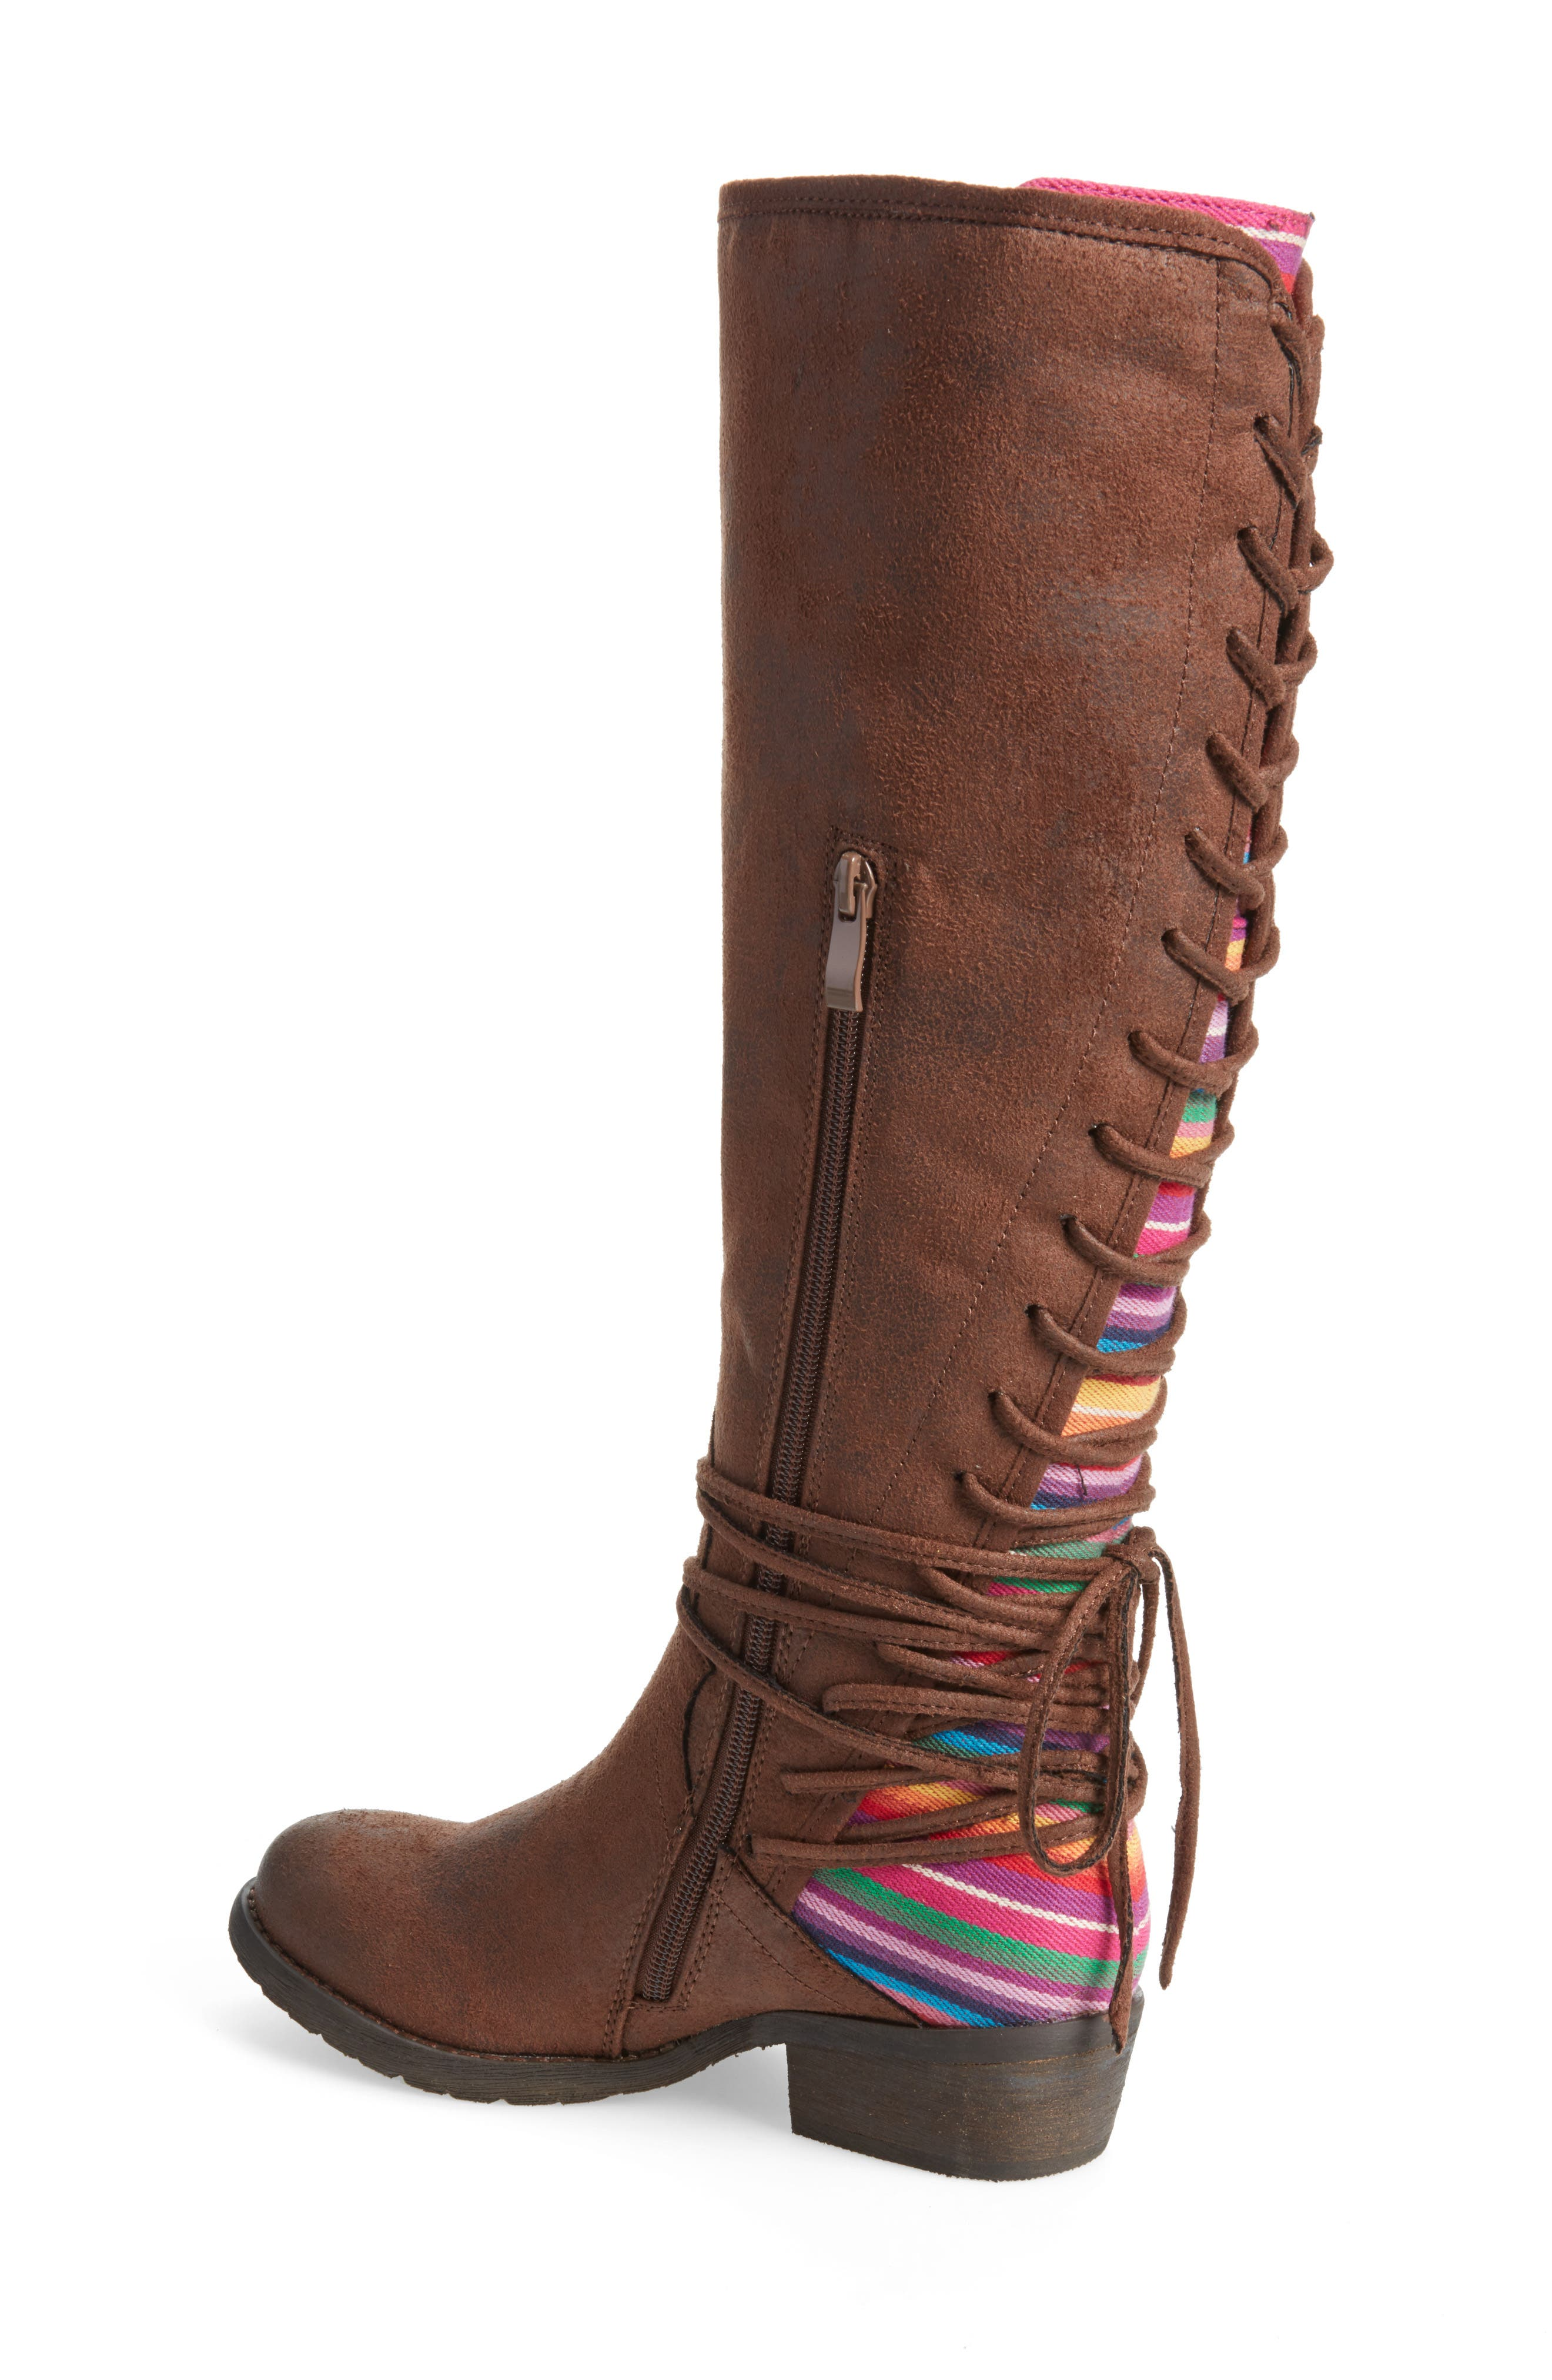 Marcel Corseted Knee High Boot,                             Alternate thumbnail 2, color,                             SERAPE